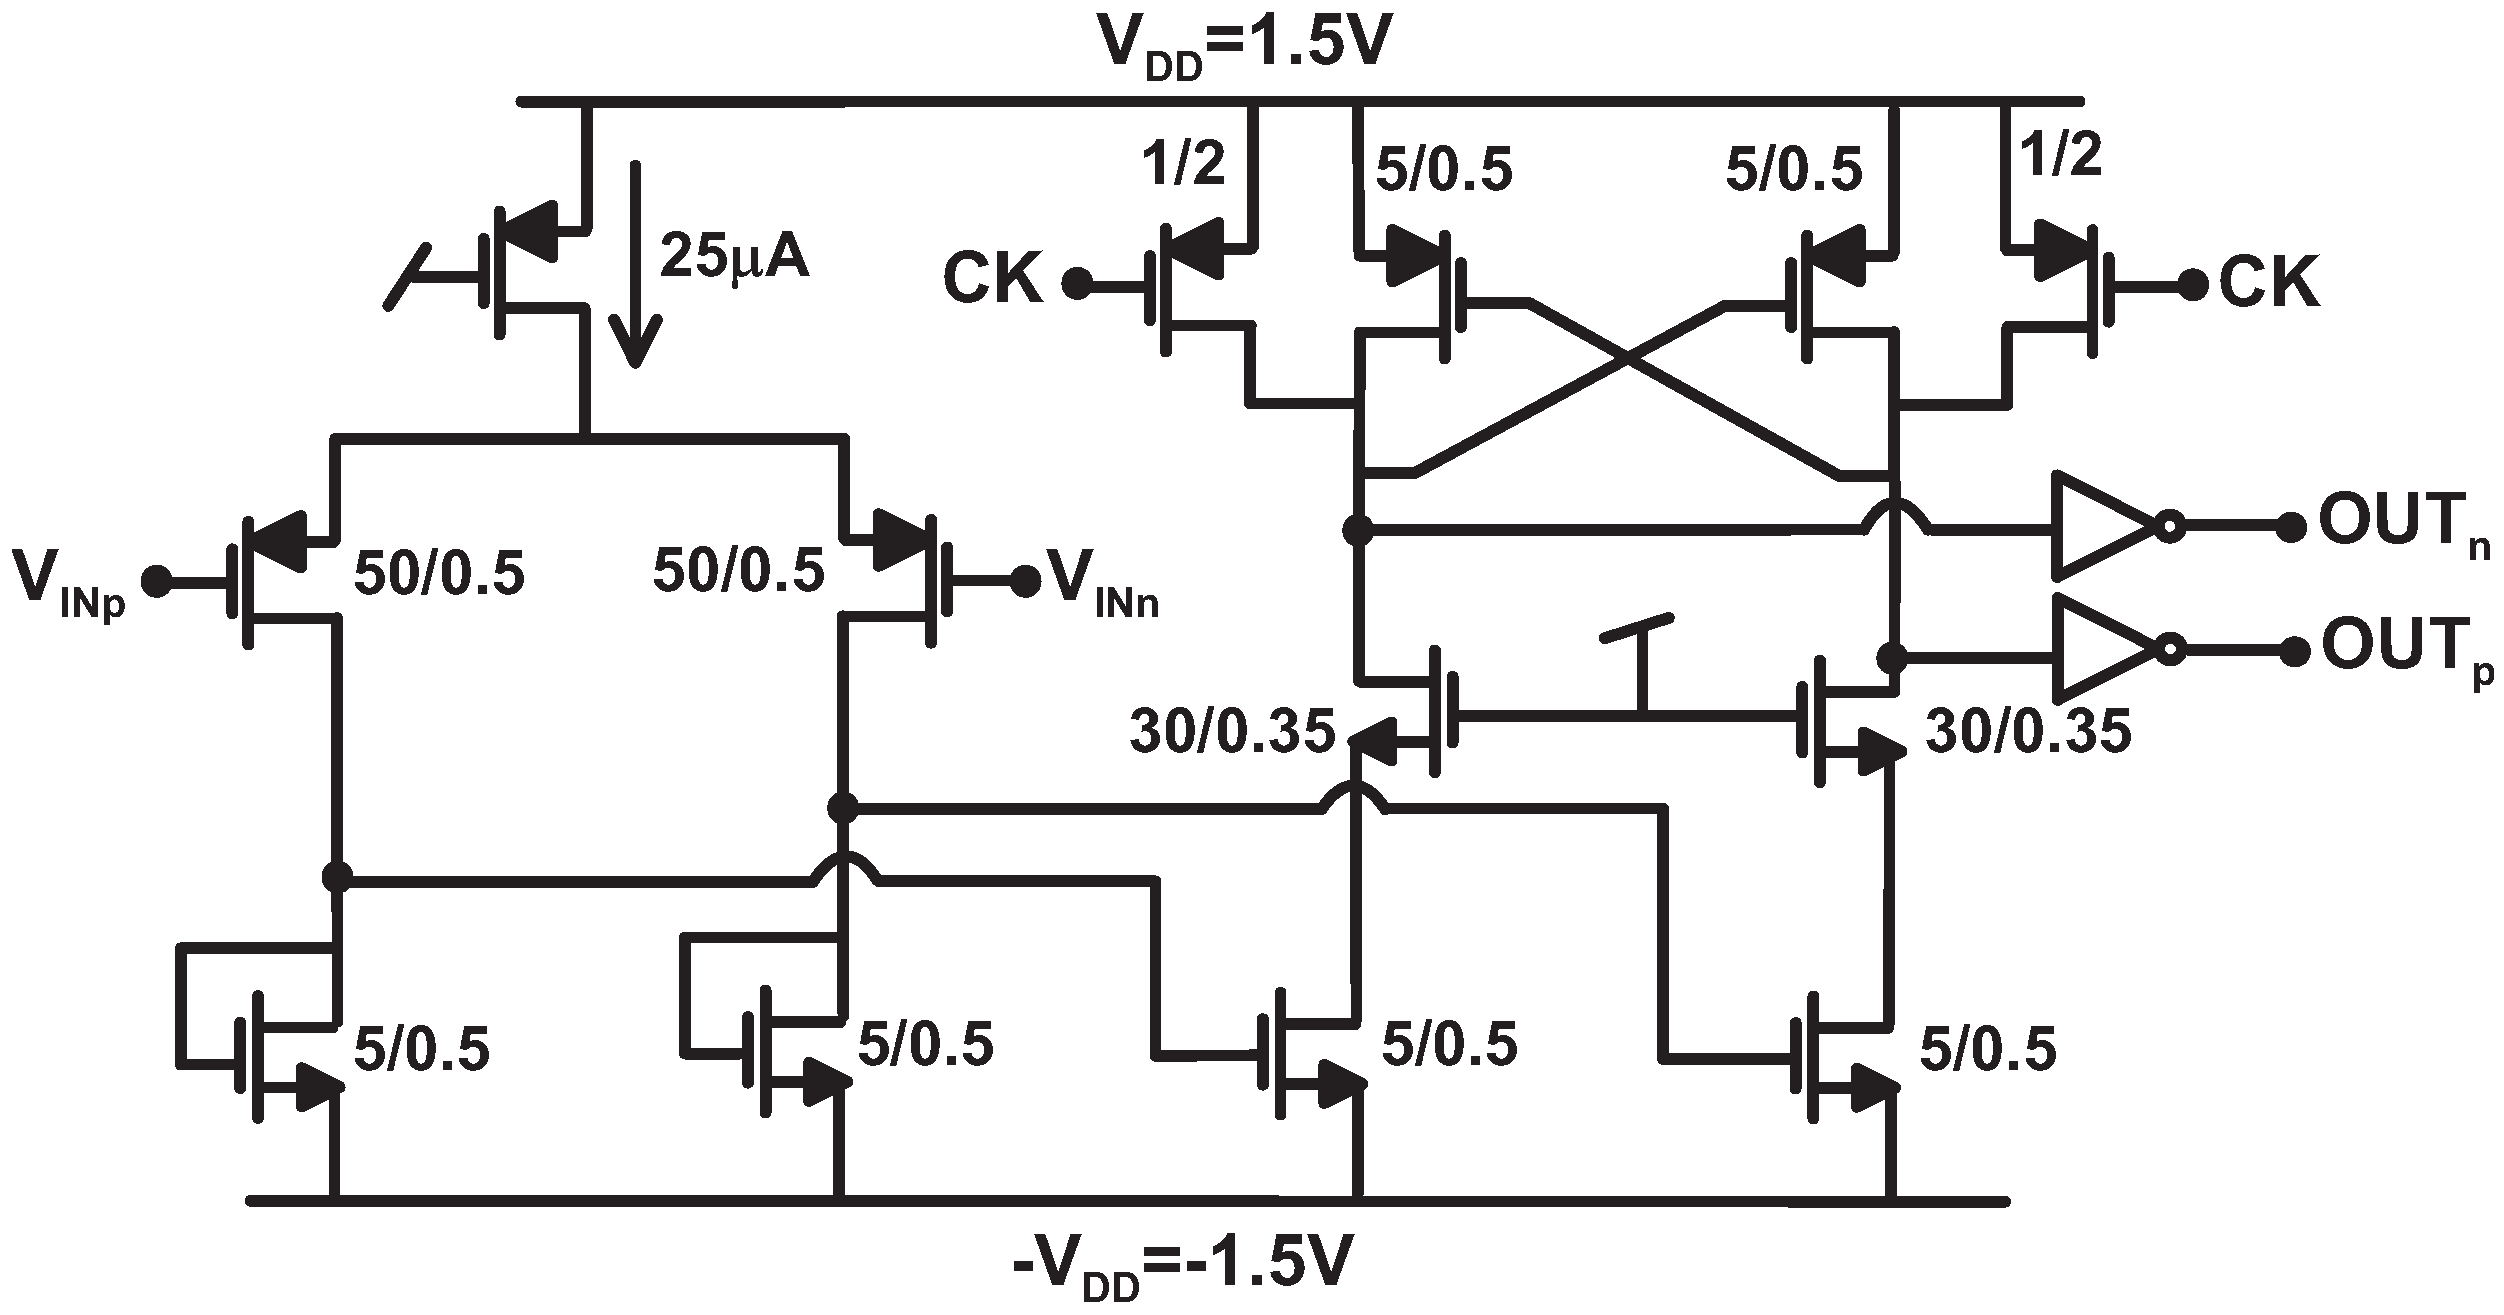 Jlpea Free Full Text A Multi Channel Low Power System On Chip 1mhz Quartz Crystal Oscillator Circuit Signalprocessing 02 00211 G004